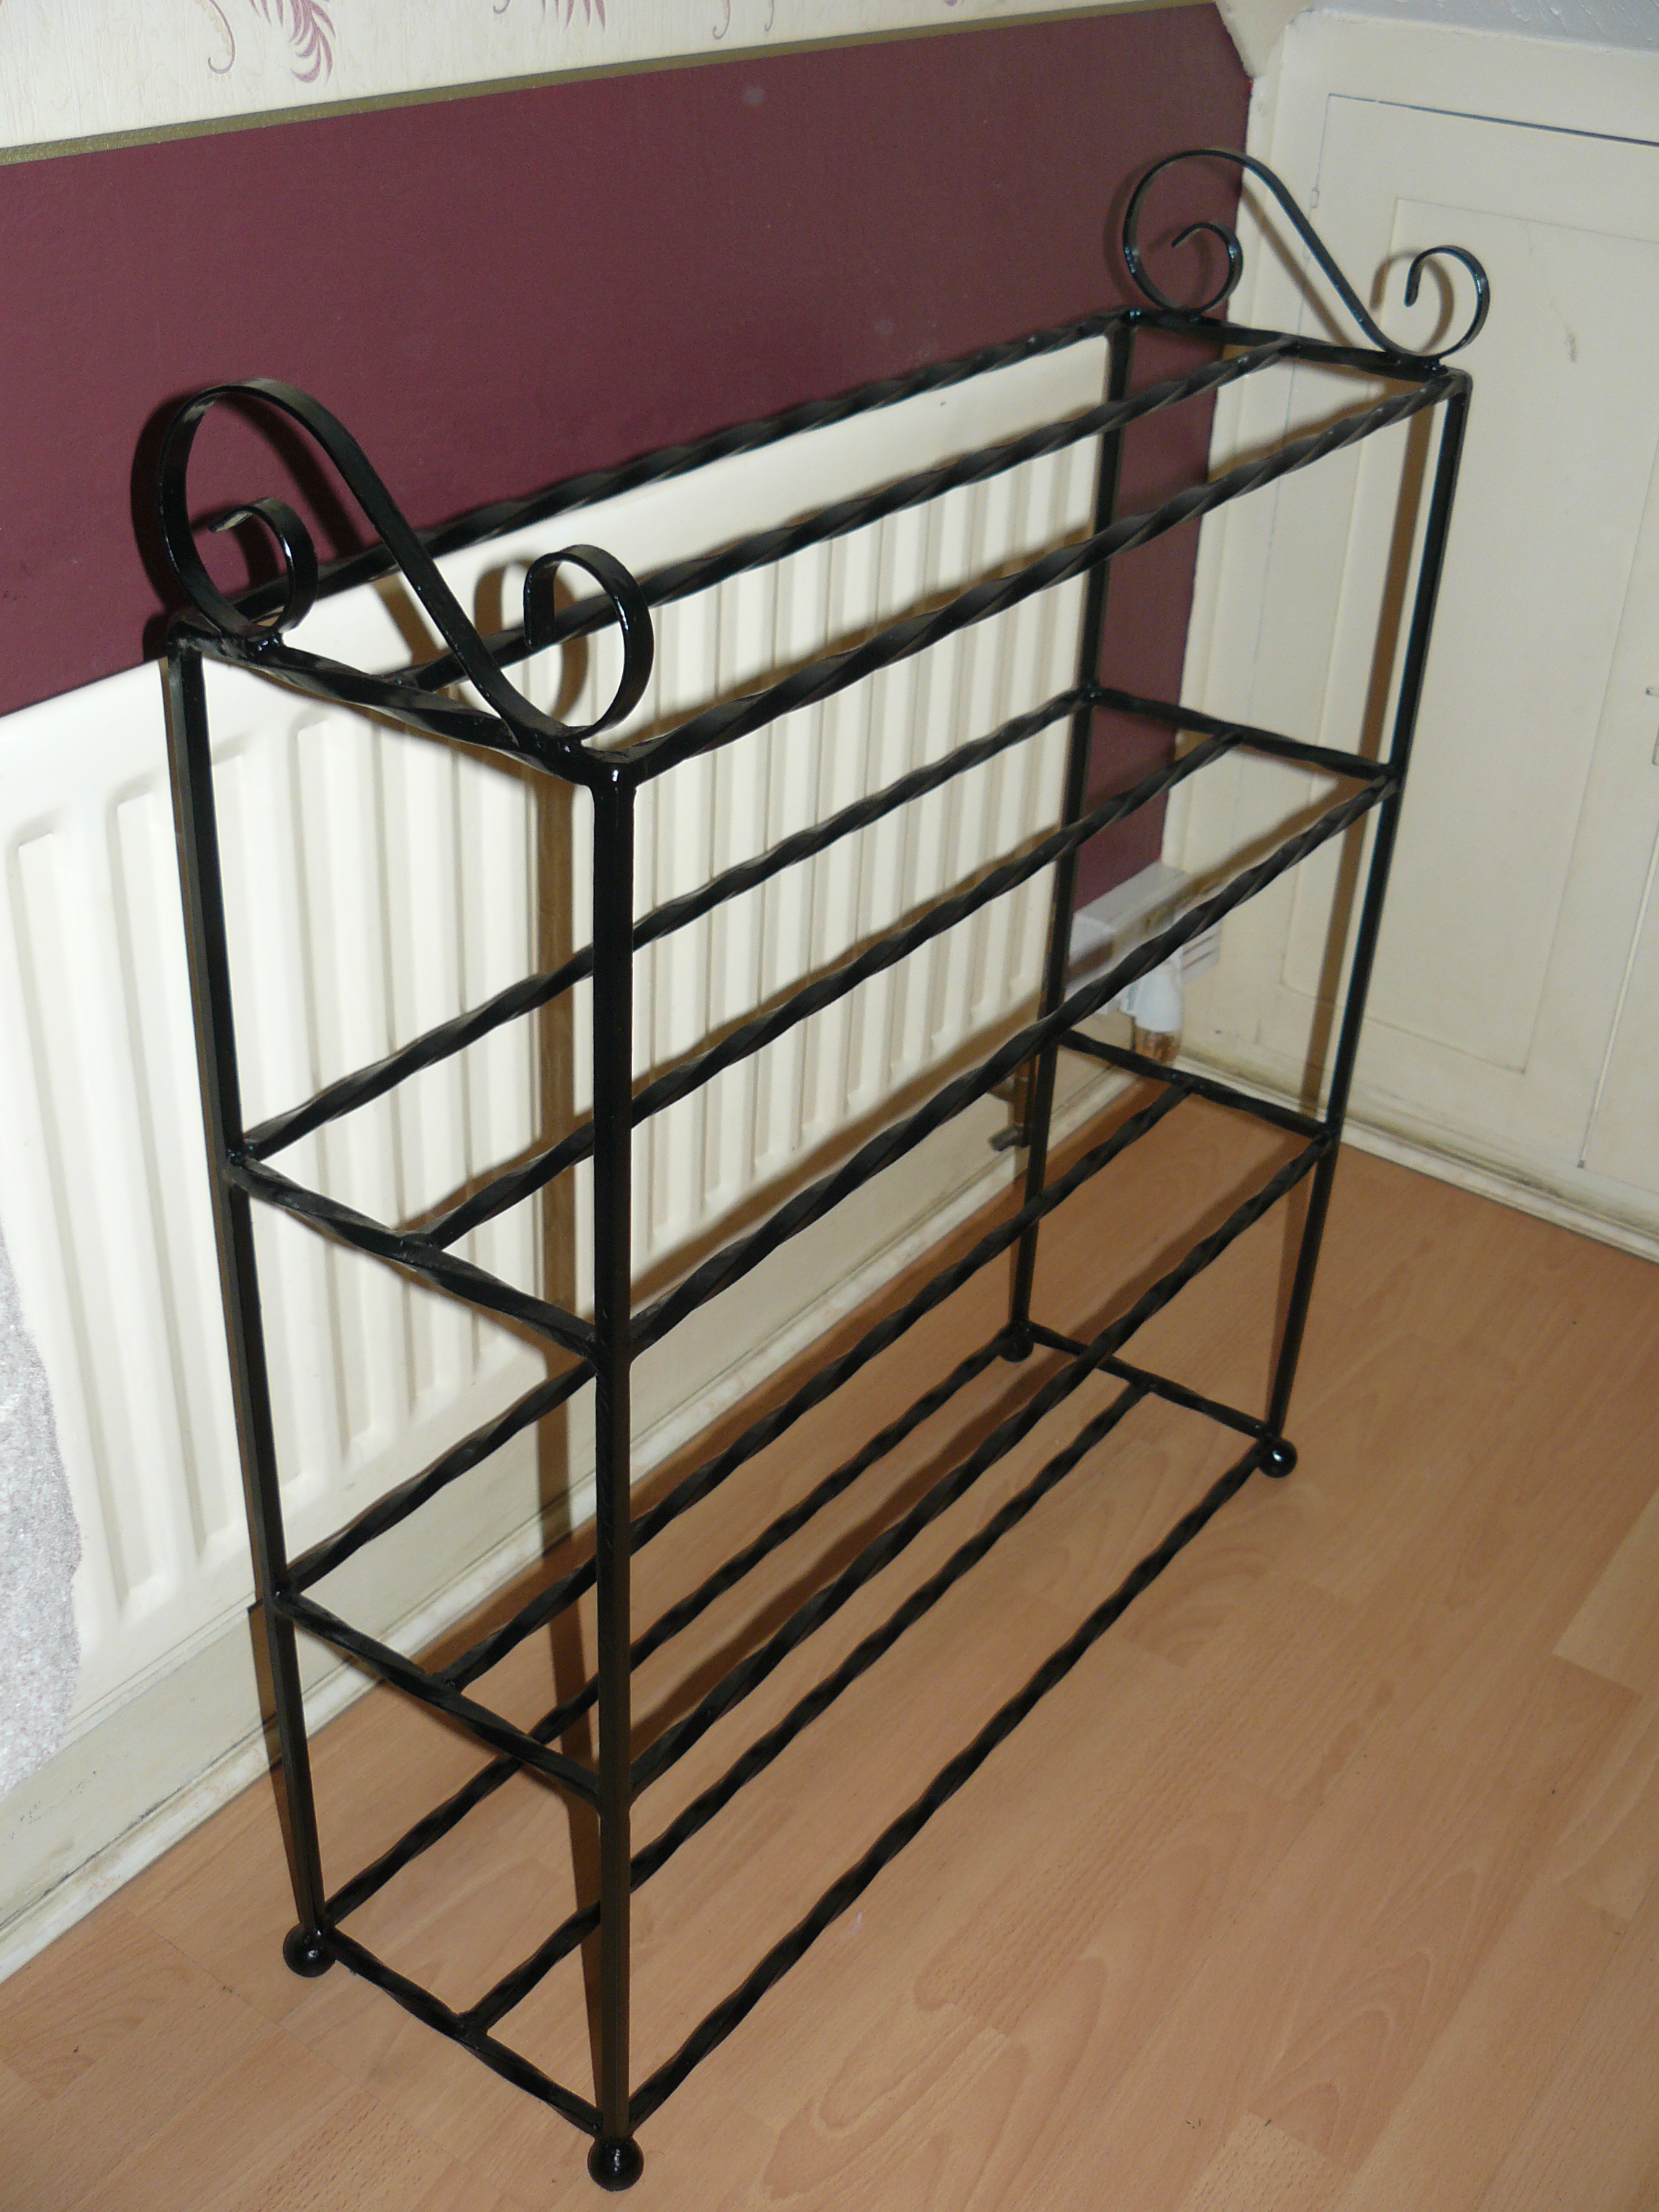 12 to 16 pair shoe rack wimborne wrought iron works